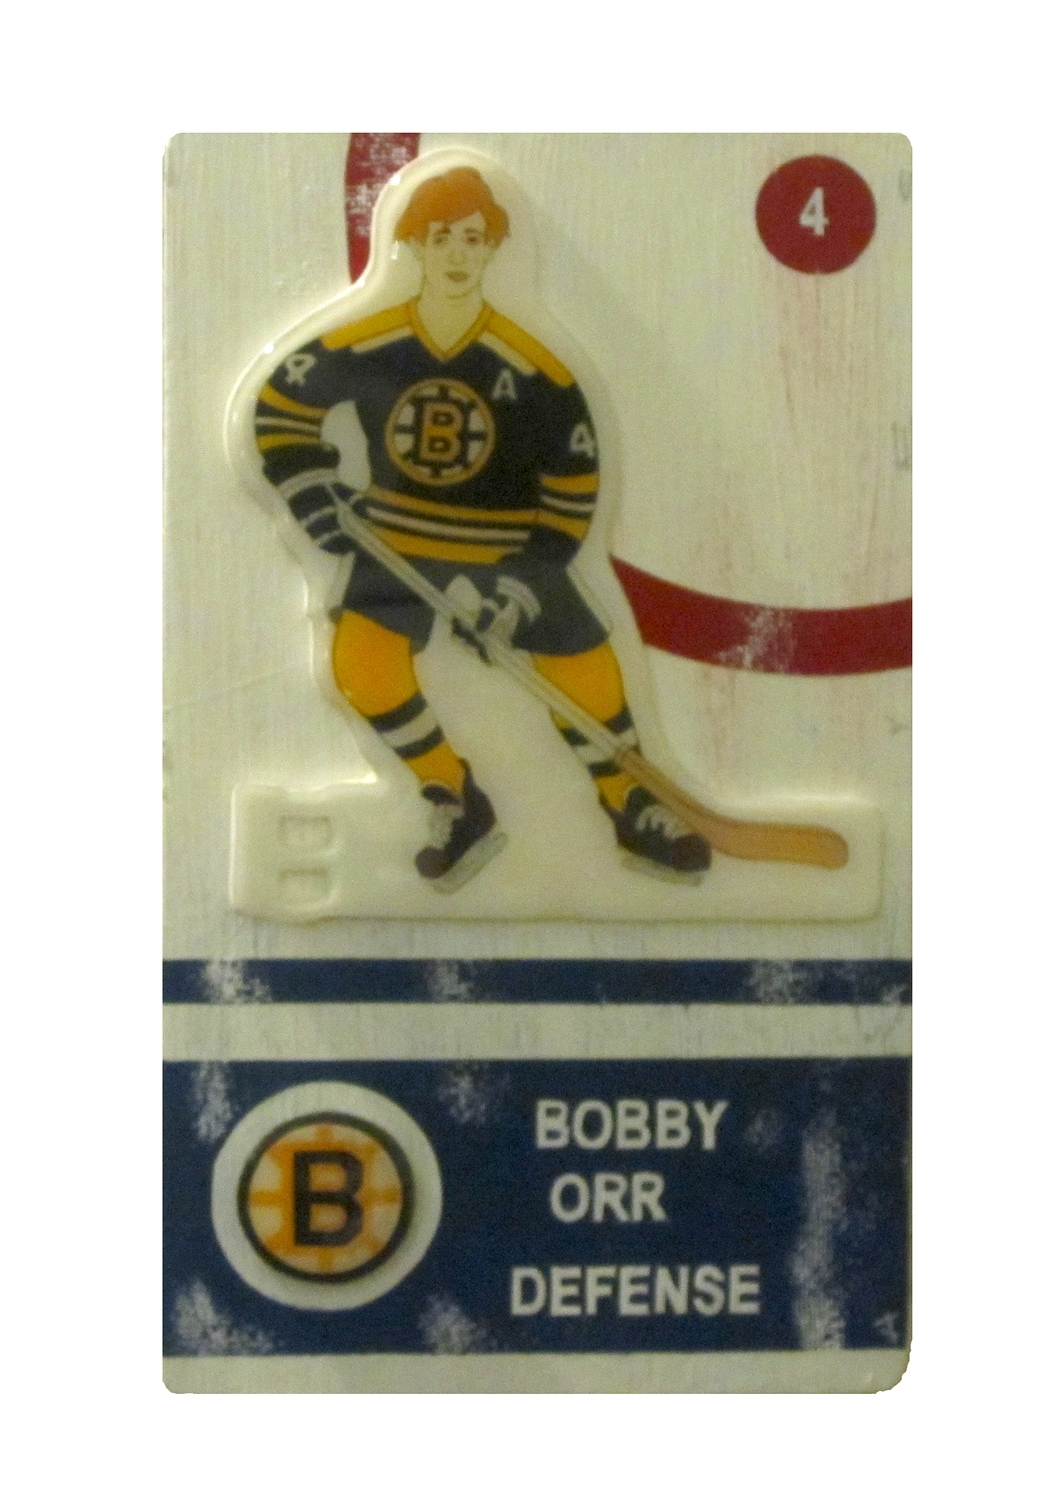 Bobby Orr Defense  by Christopher Hayes